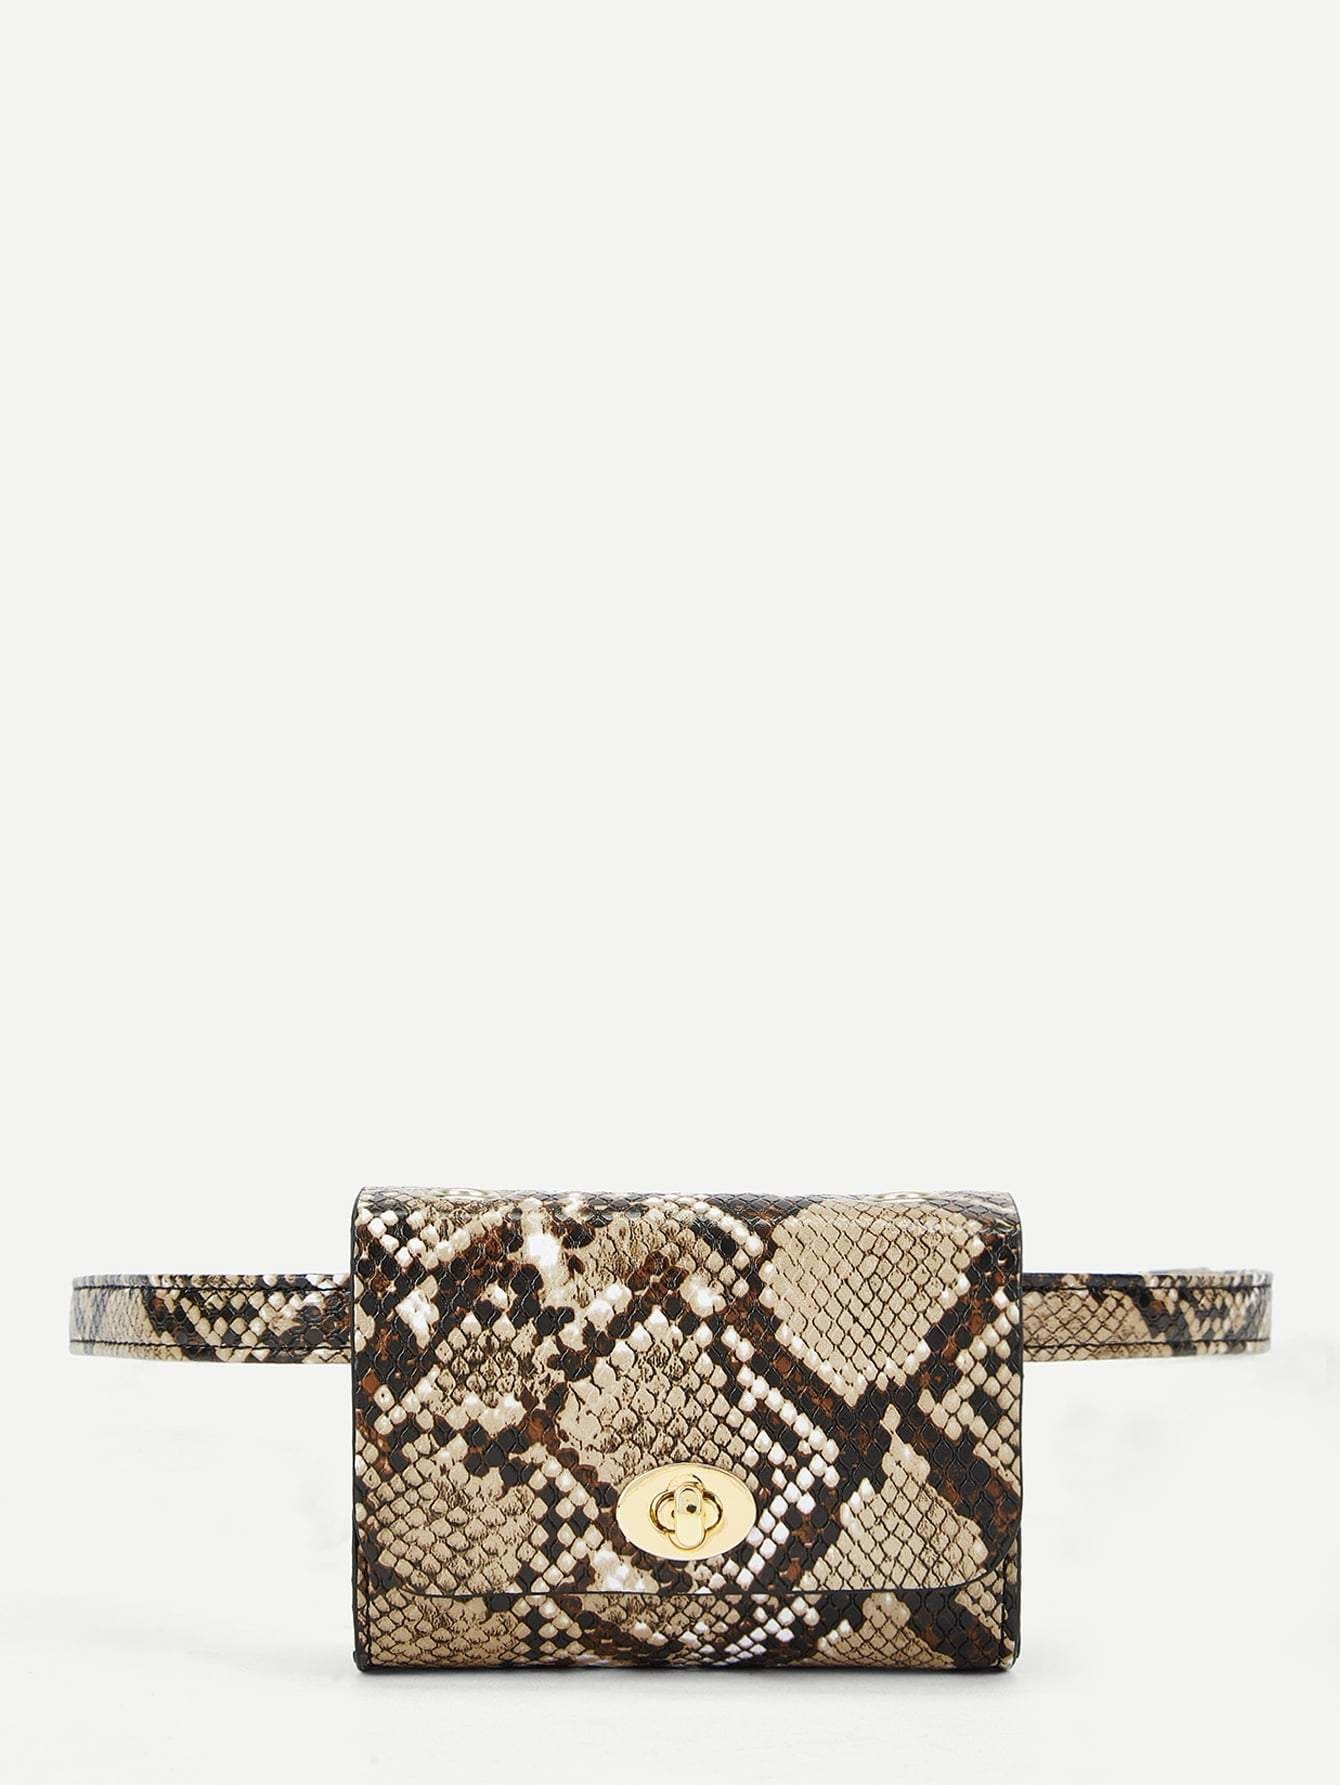 Twist Lock Snakeskin Print Fanny Pack - Womens Bag